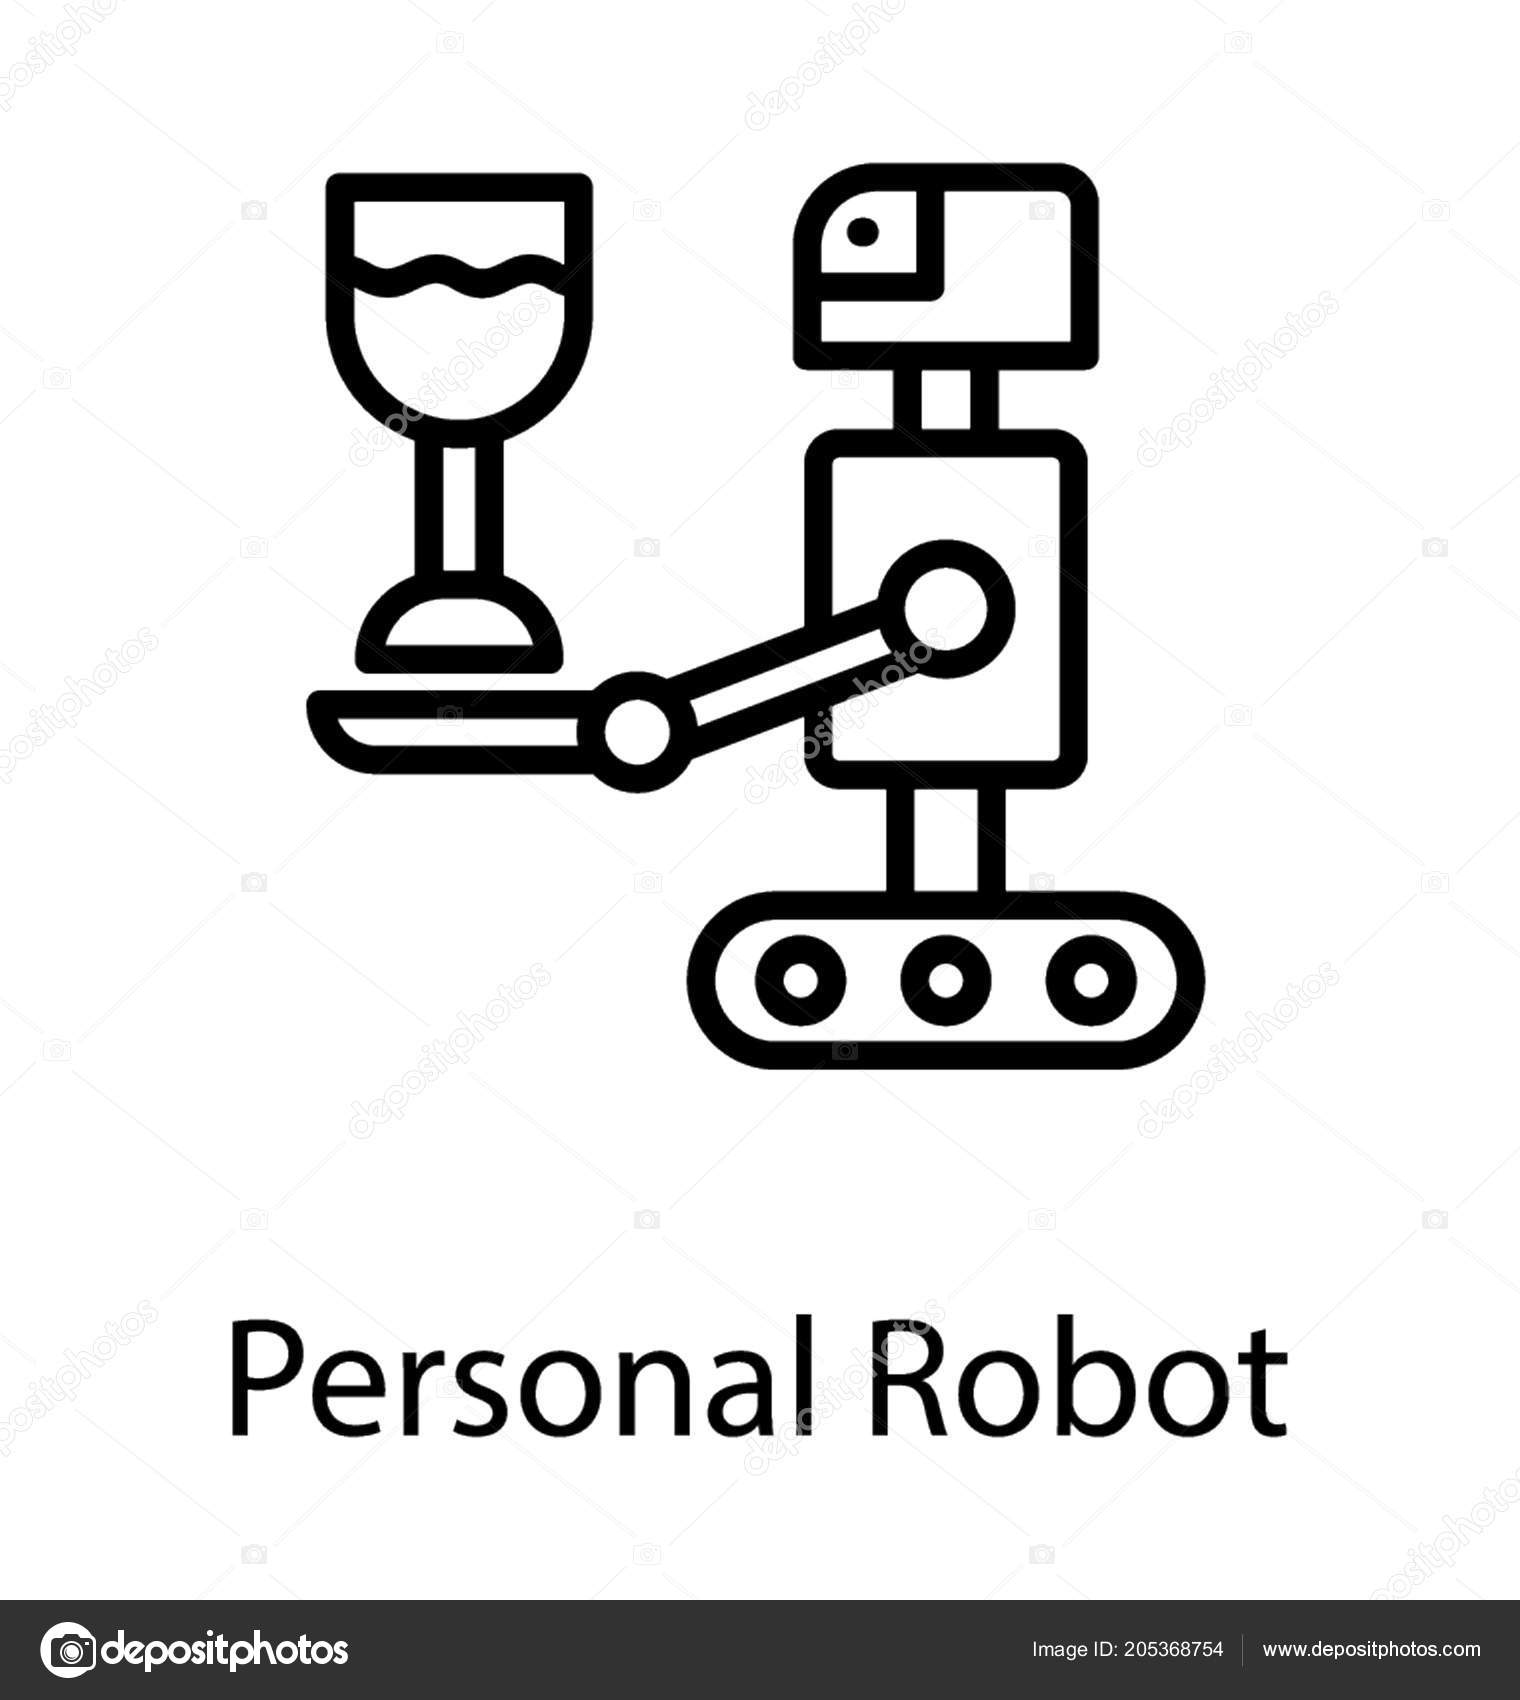 Cartoon Robot Serving Drink Glass Personal Robot Line Icon